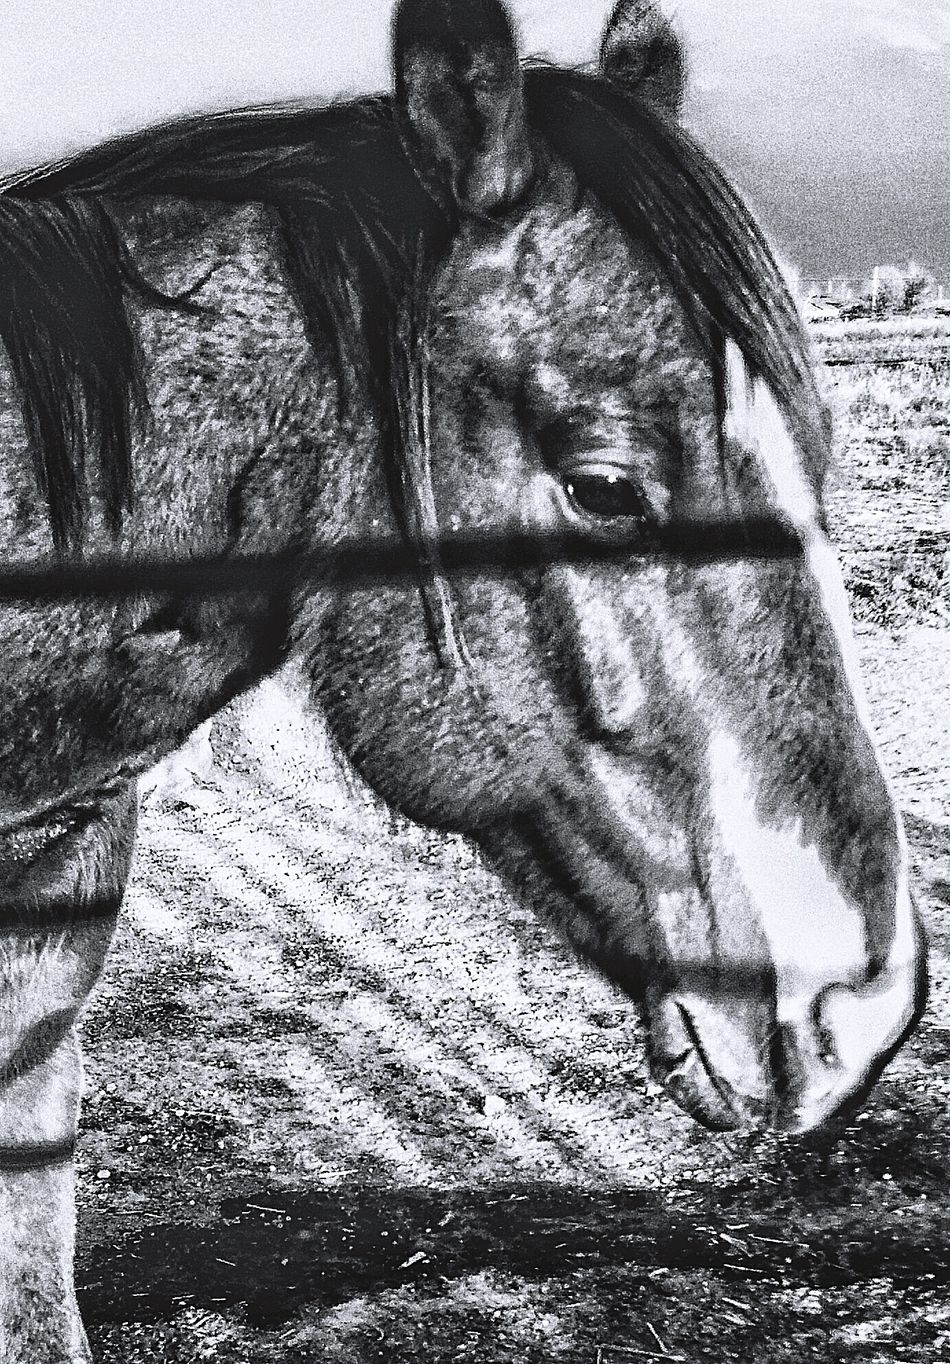 Ranch horses Horse Pony Stud stallion Working Animal Livestock Ranch Farm Country Cowboy Lifestyle Animal Theme Mammal Equine western Outdoors Barn Pasture Stable Corral Hoof Livestock Profile Rural_living